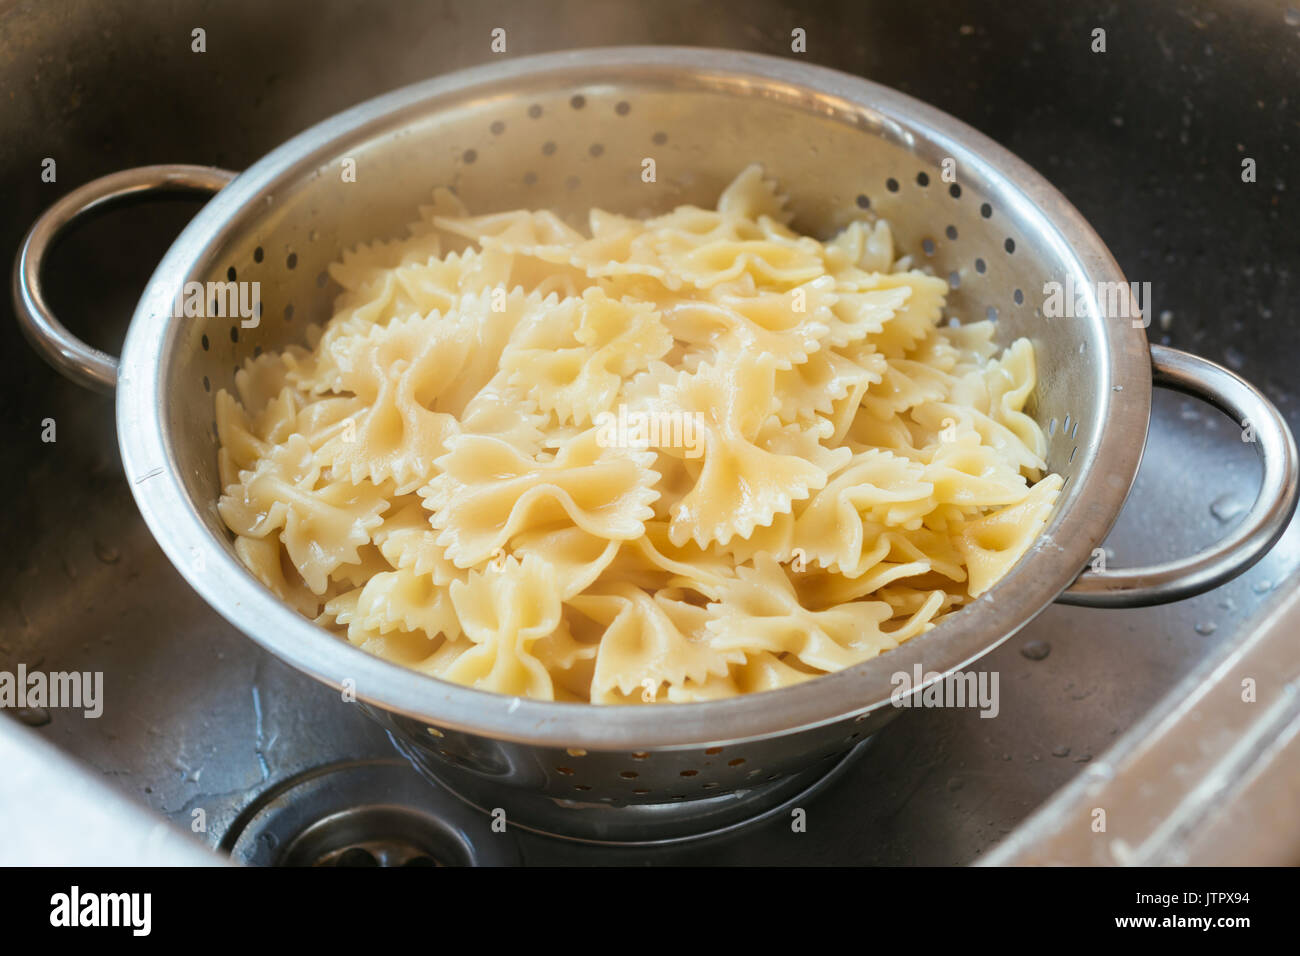 Cooked farfalle (bow-tie) pasta in a colander - Stock Image